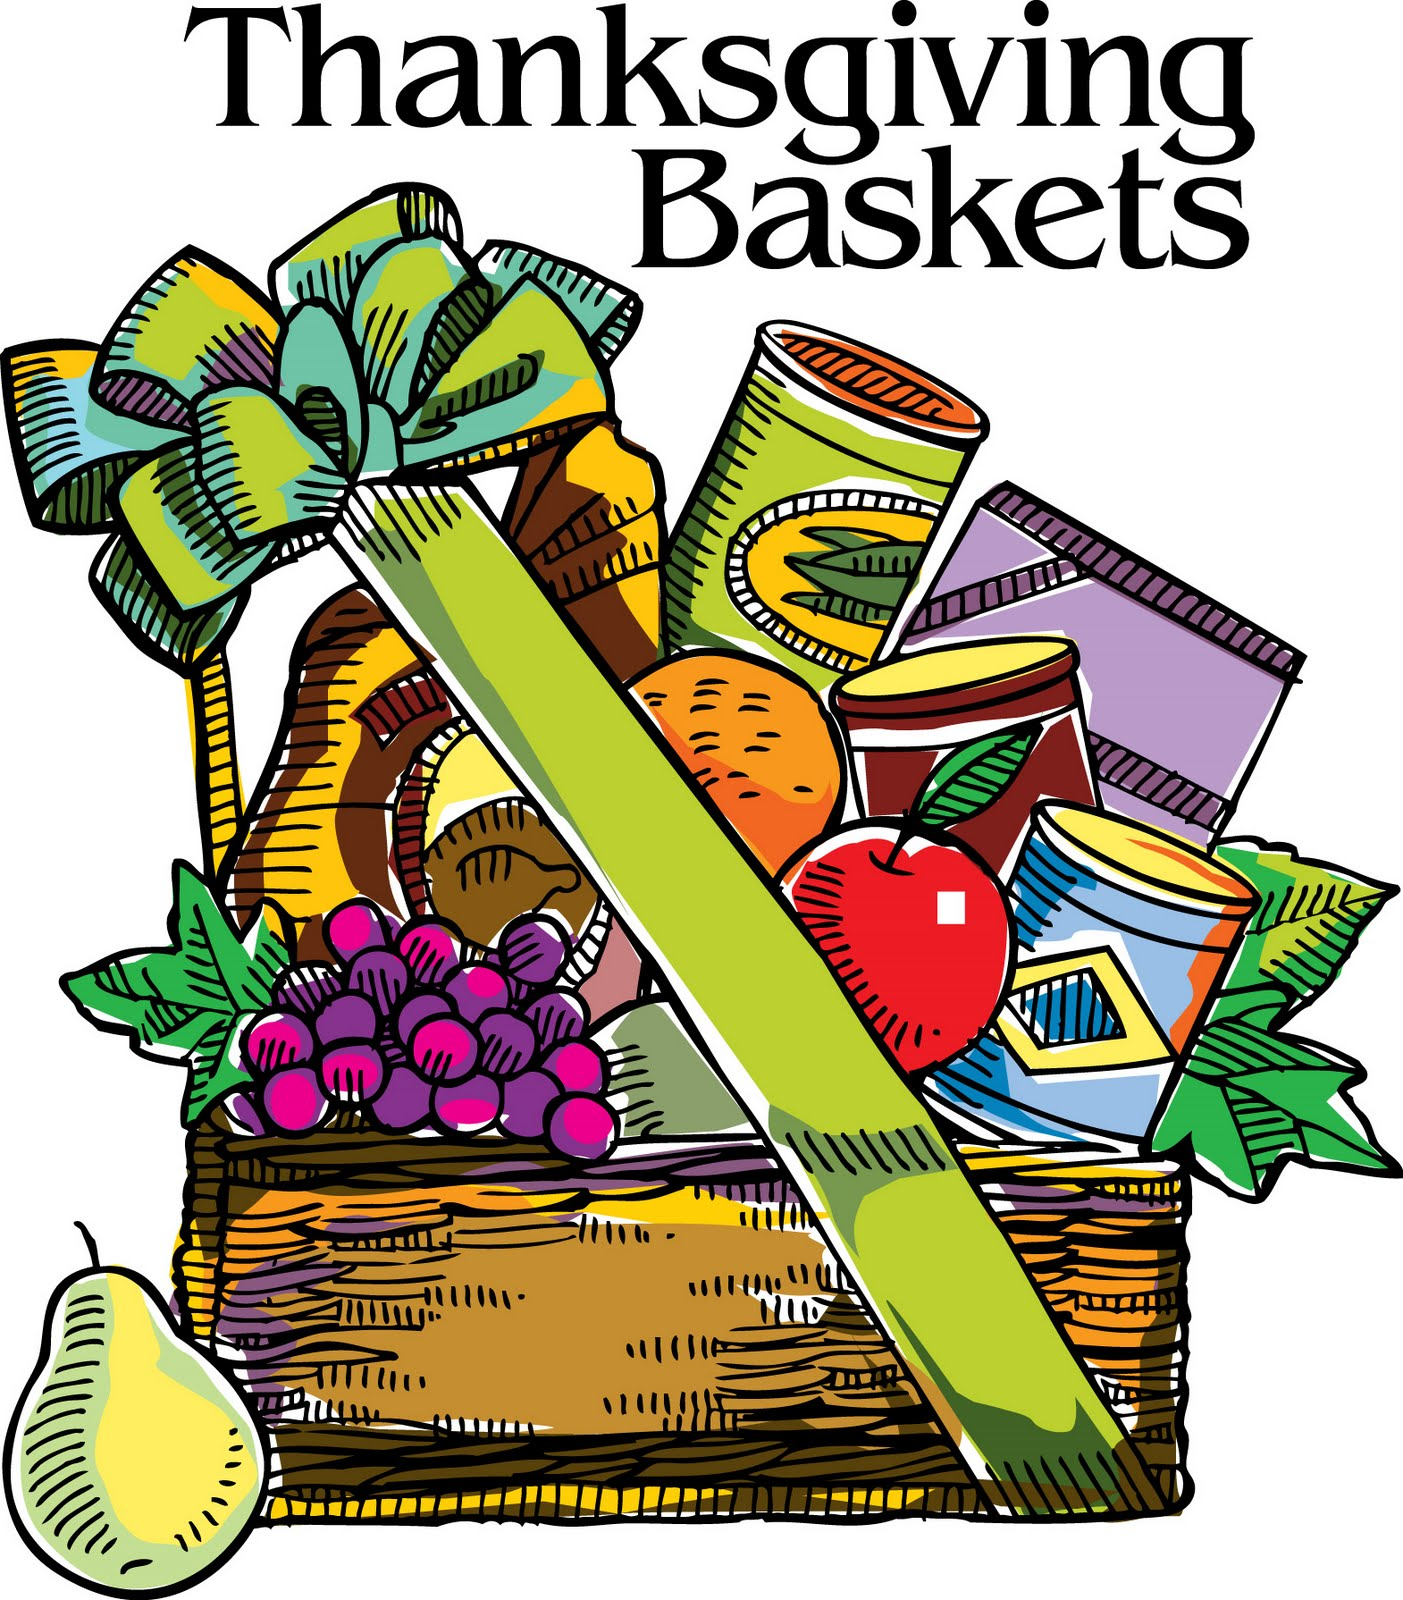 Gift basket thanksgiving food baskets clipart